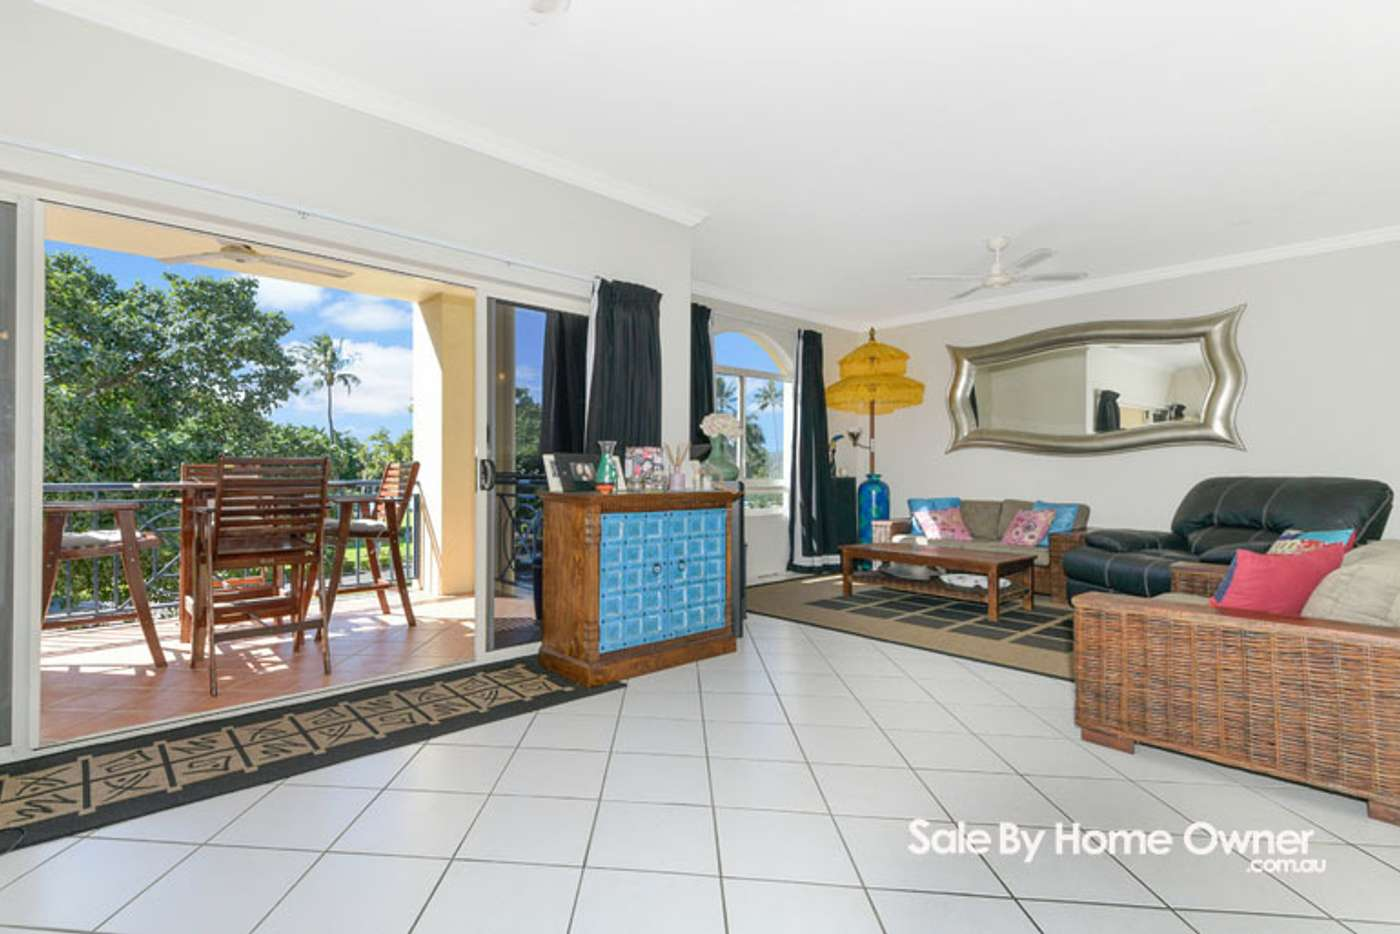 Main view of Homely apartment listing, 11/18 The Strand, North Ward QLD 4810